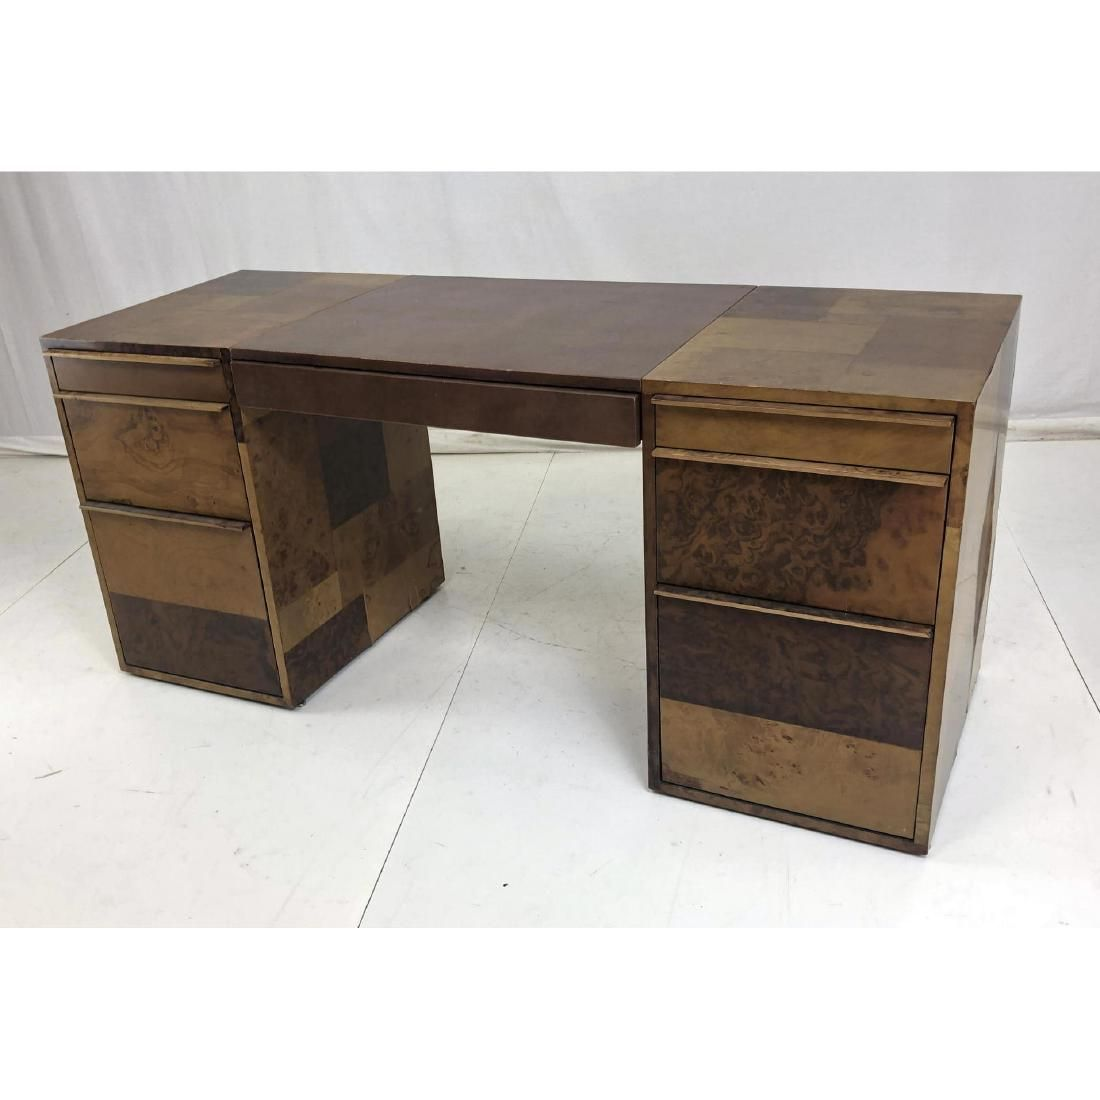 PAUL EVANS Burl Wood Panel Executive Desk. Mosaic